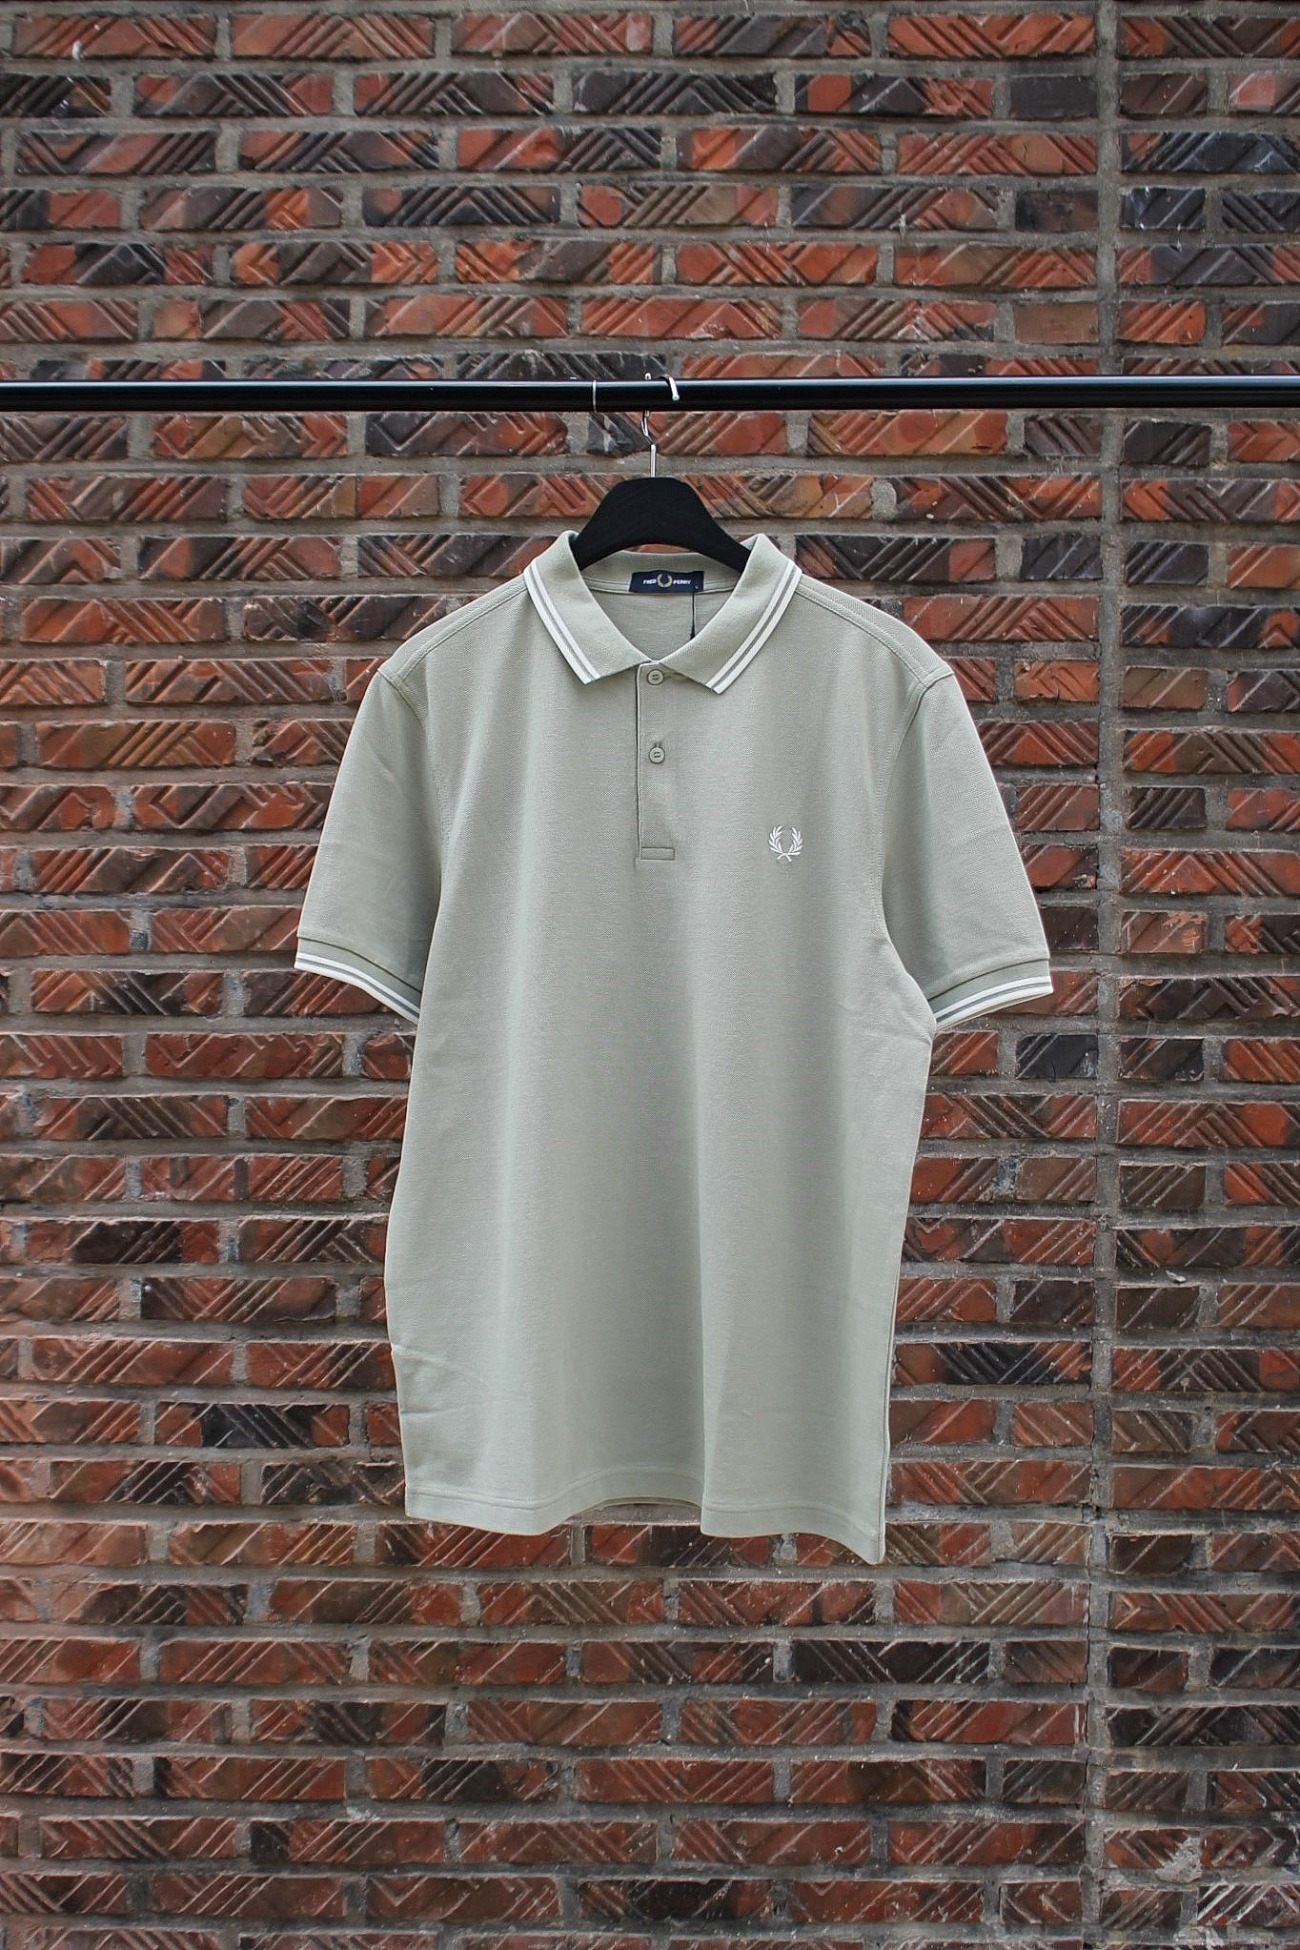 [FRED PERRY] Twin Tipped Fred Perry Shirt - Light Sage / Snow White